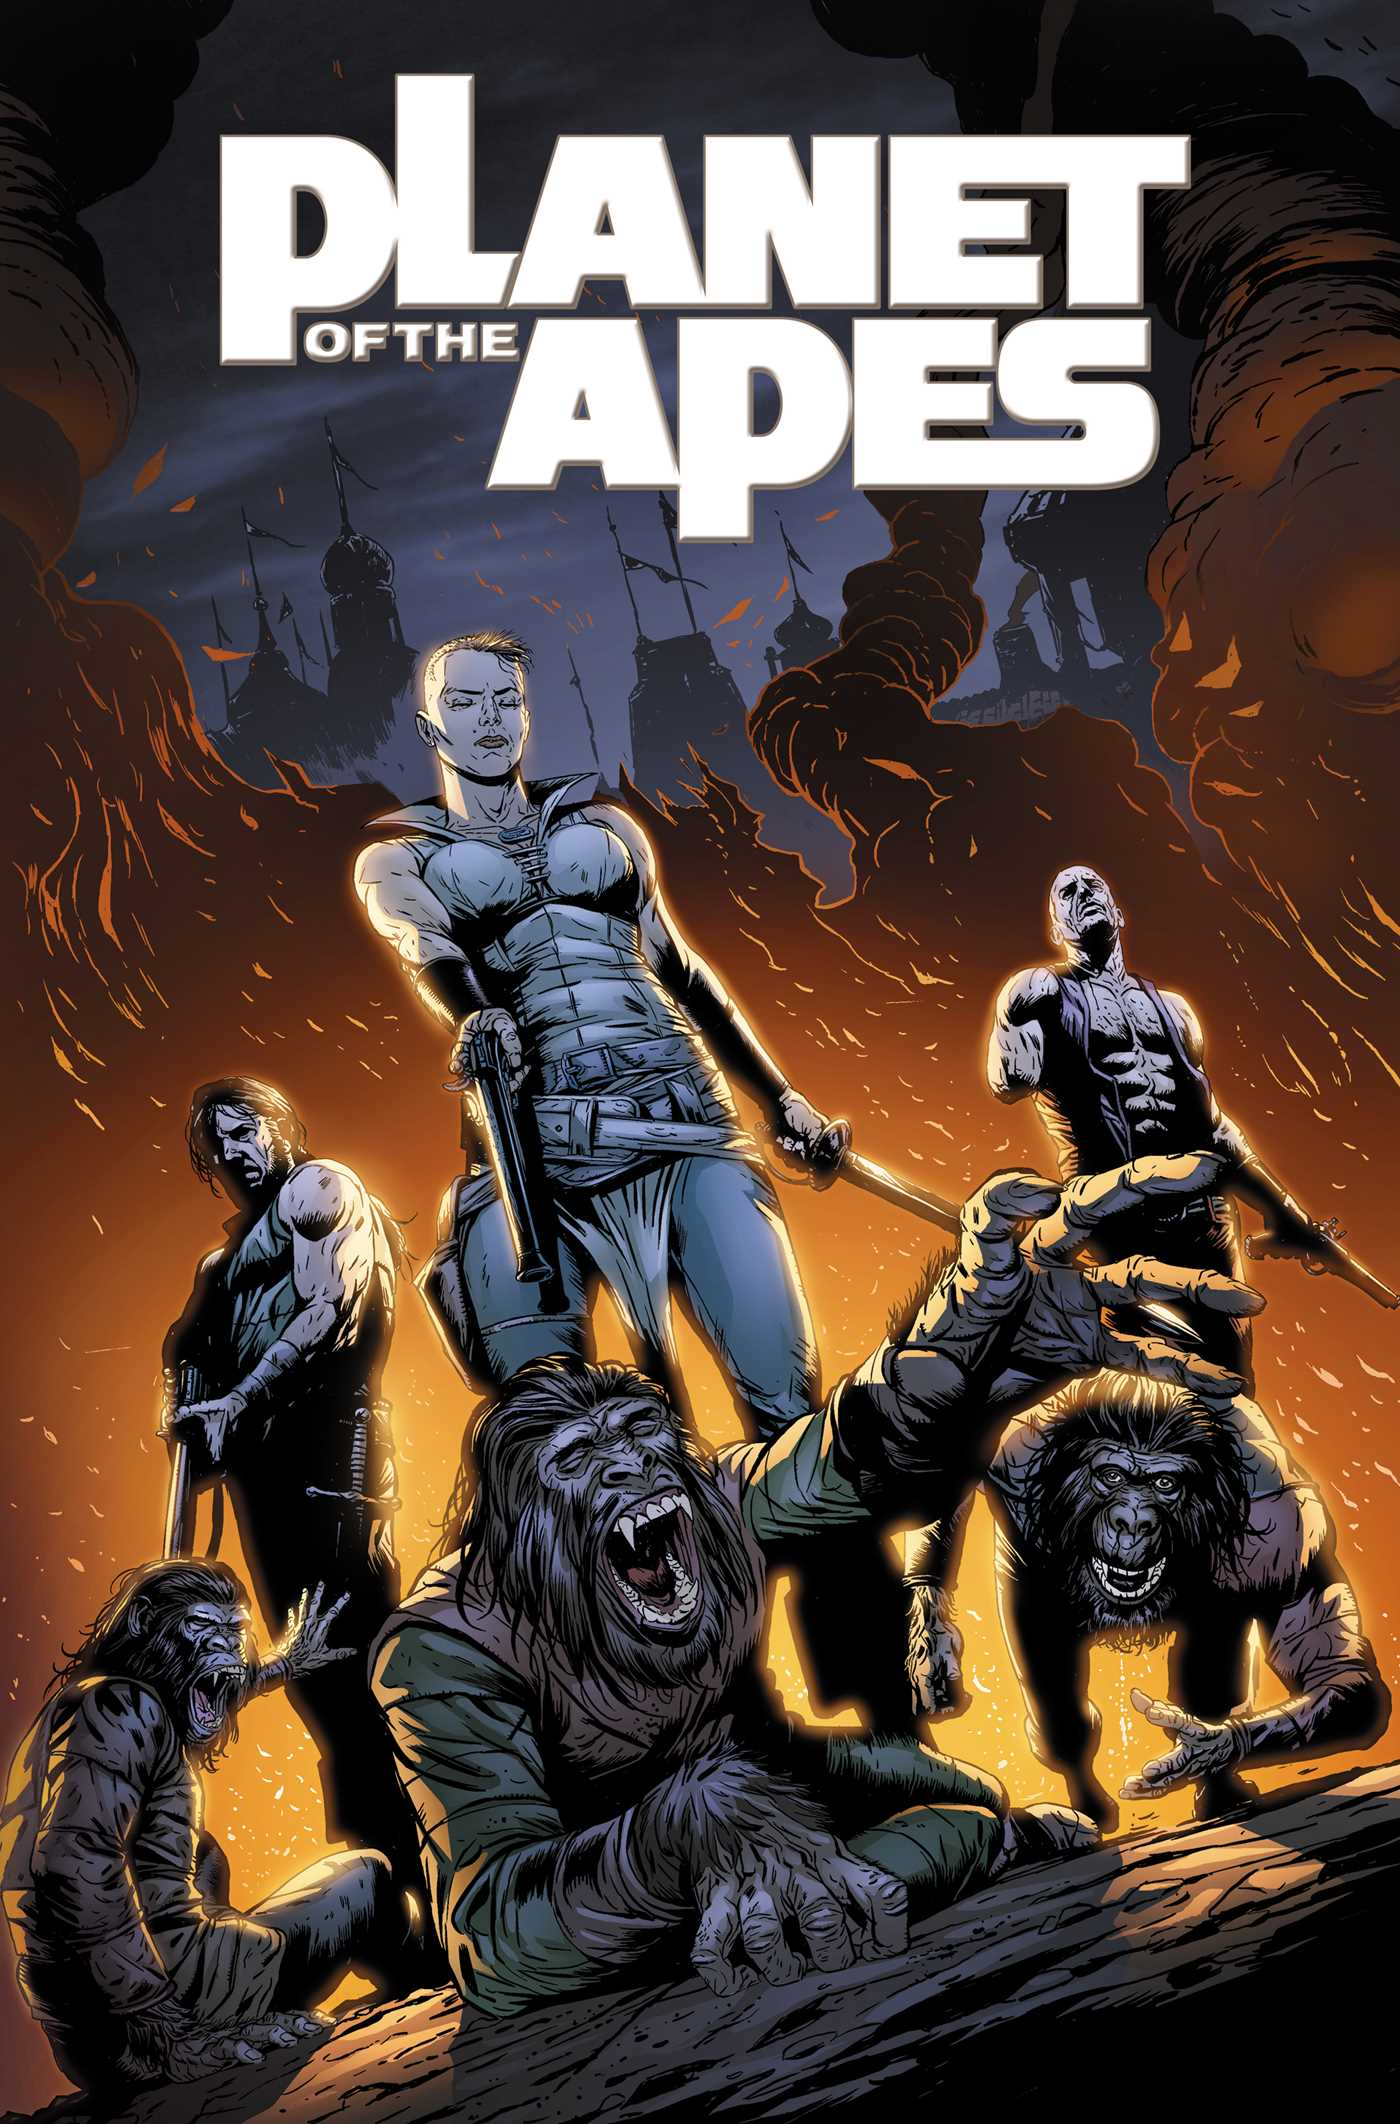 Planet-of-the-apes-vol-5-9781608863709_hr